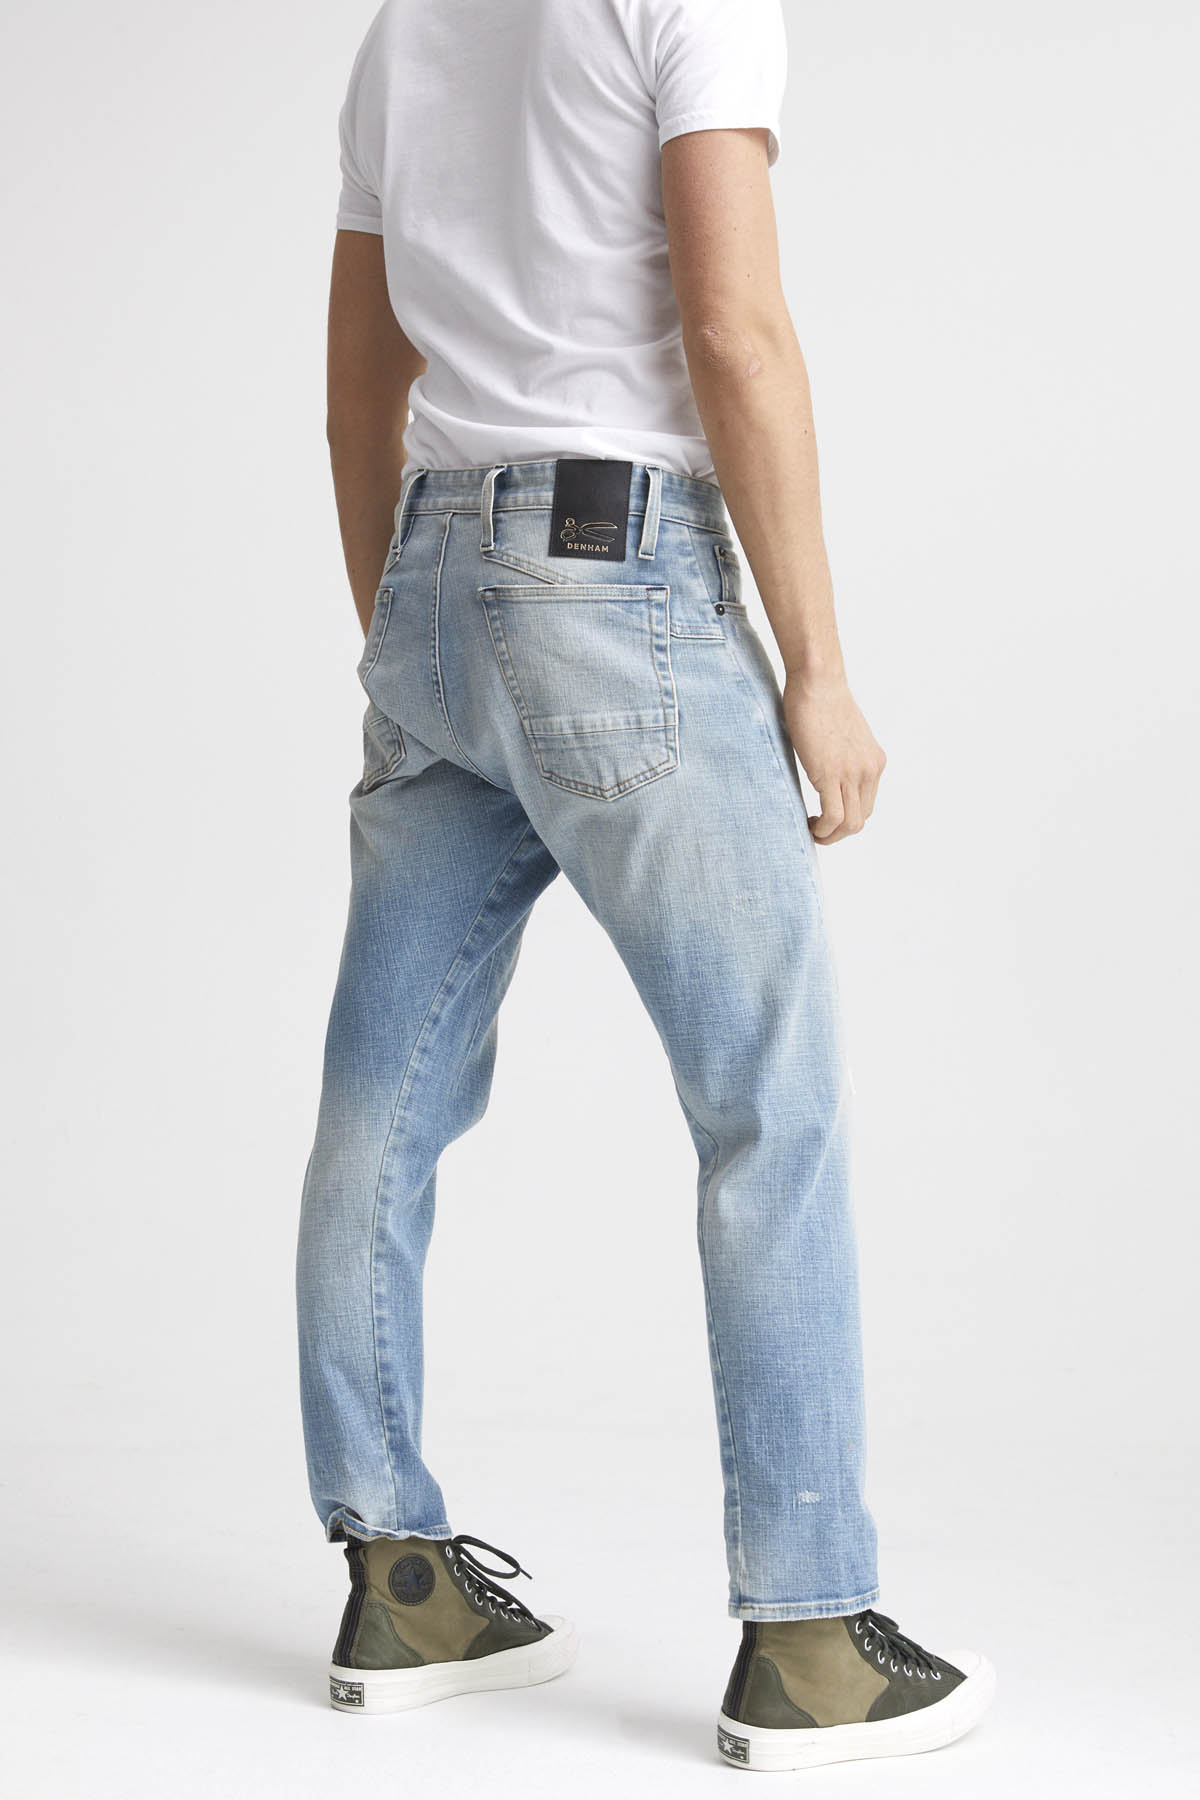 Kinetic - Wide Tapered Fit Jeans - Back